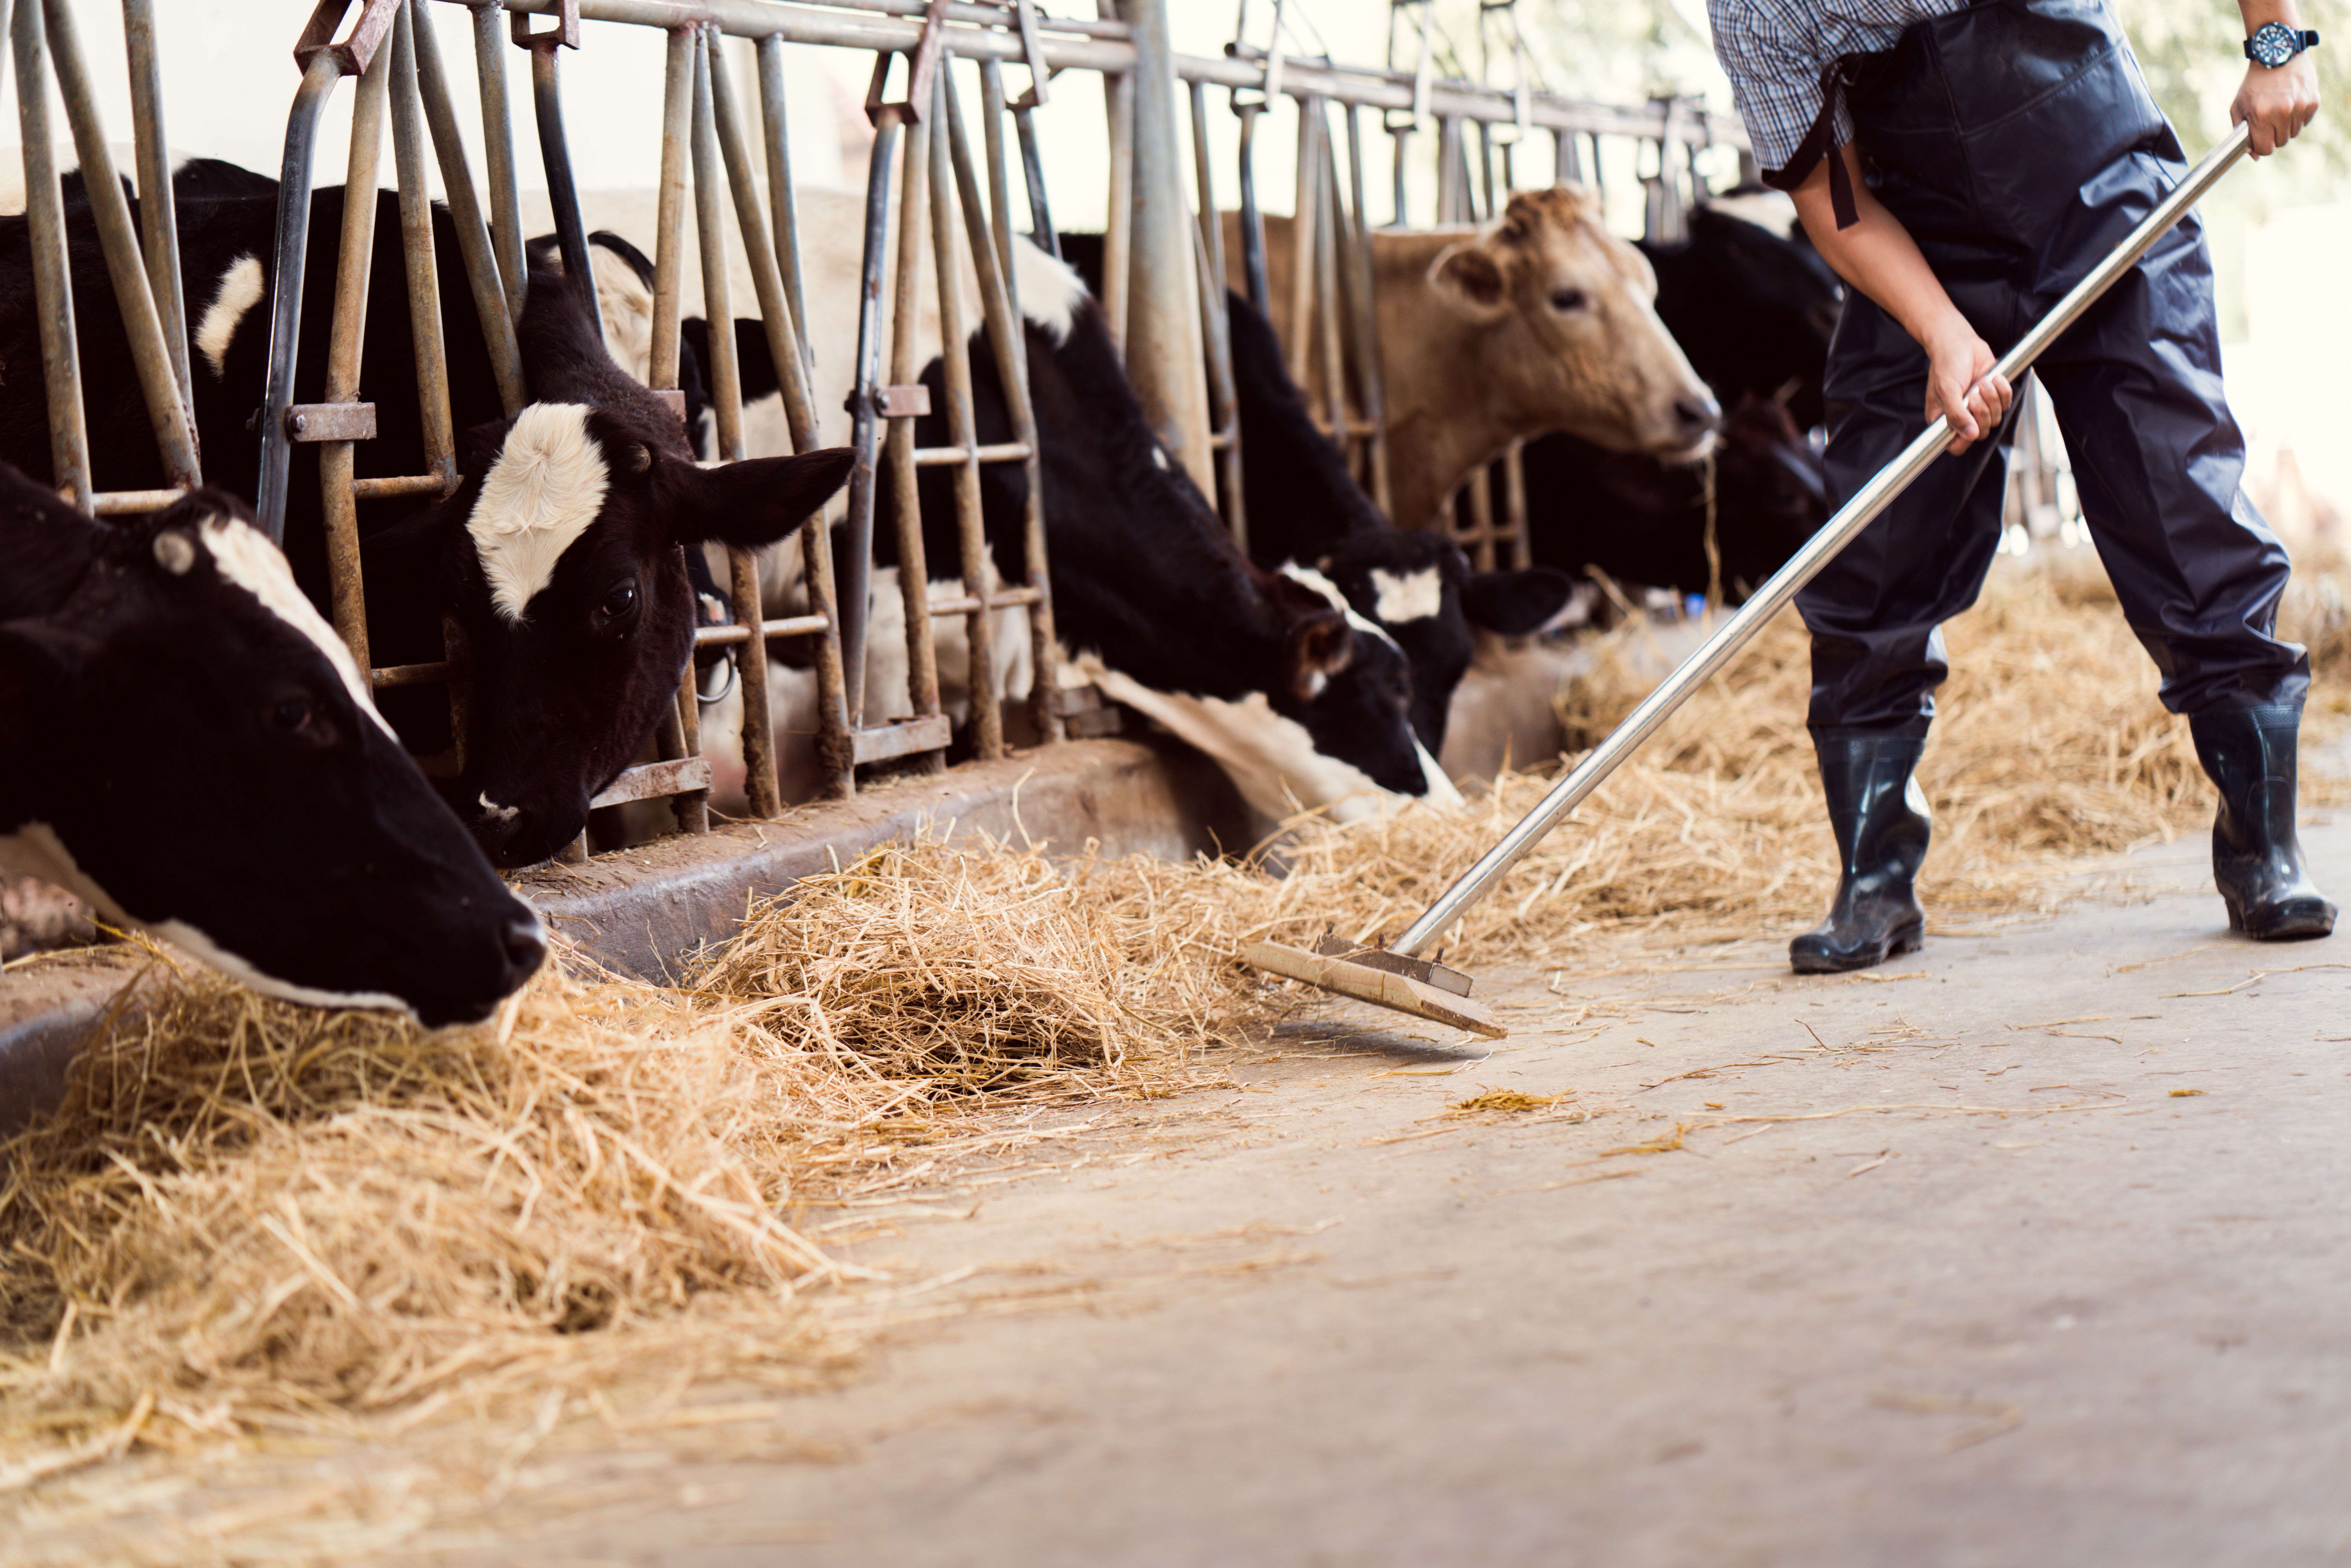 A farmer sweeps up hay near a pen of cows at a dairy farm.